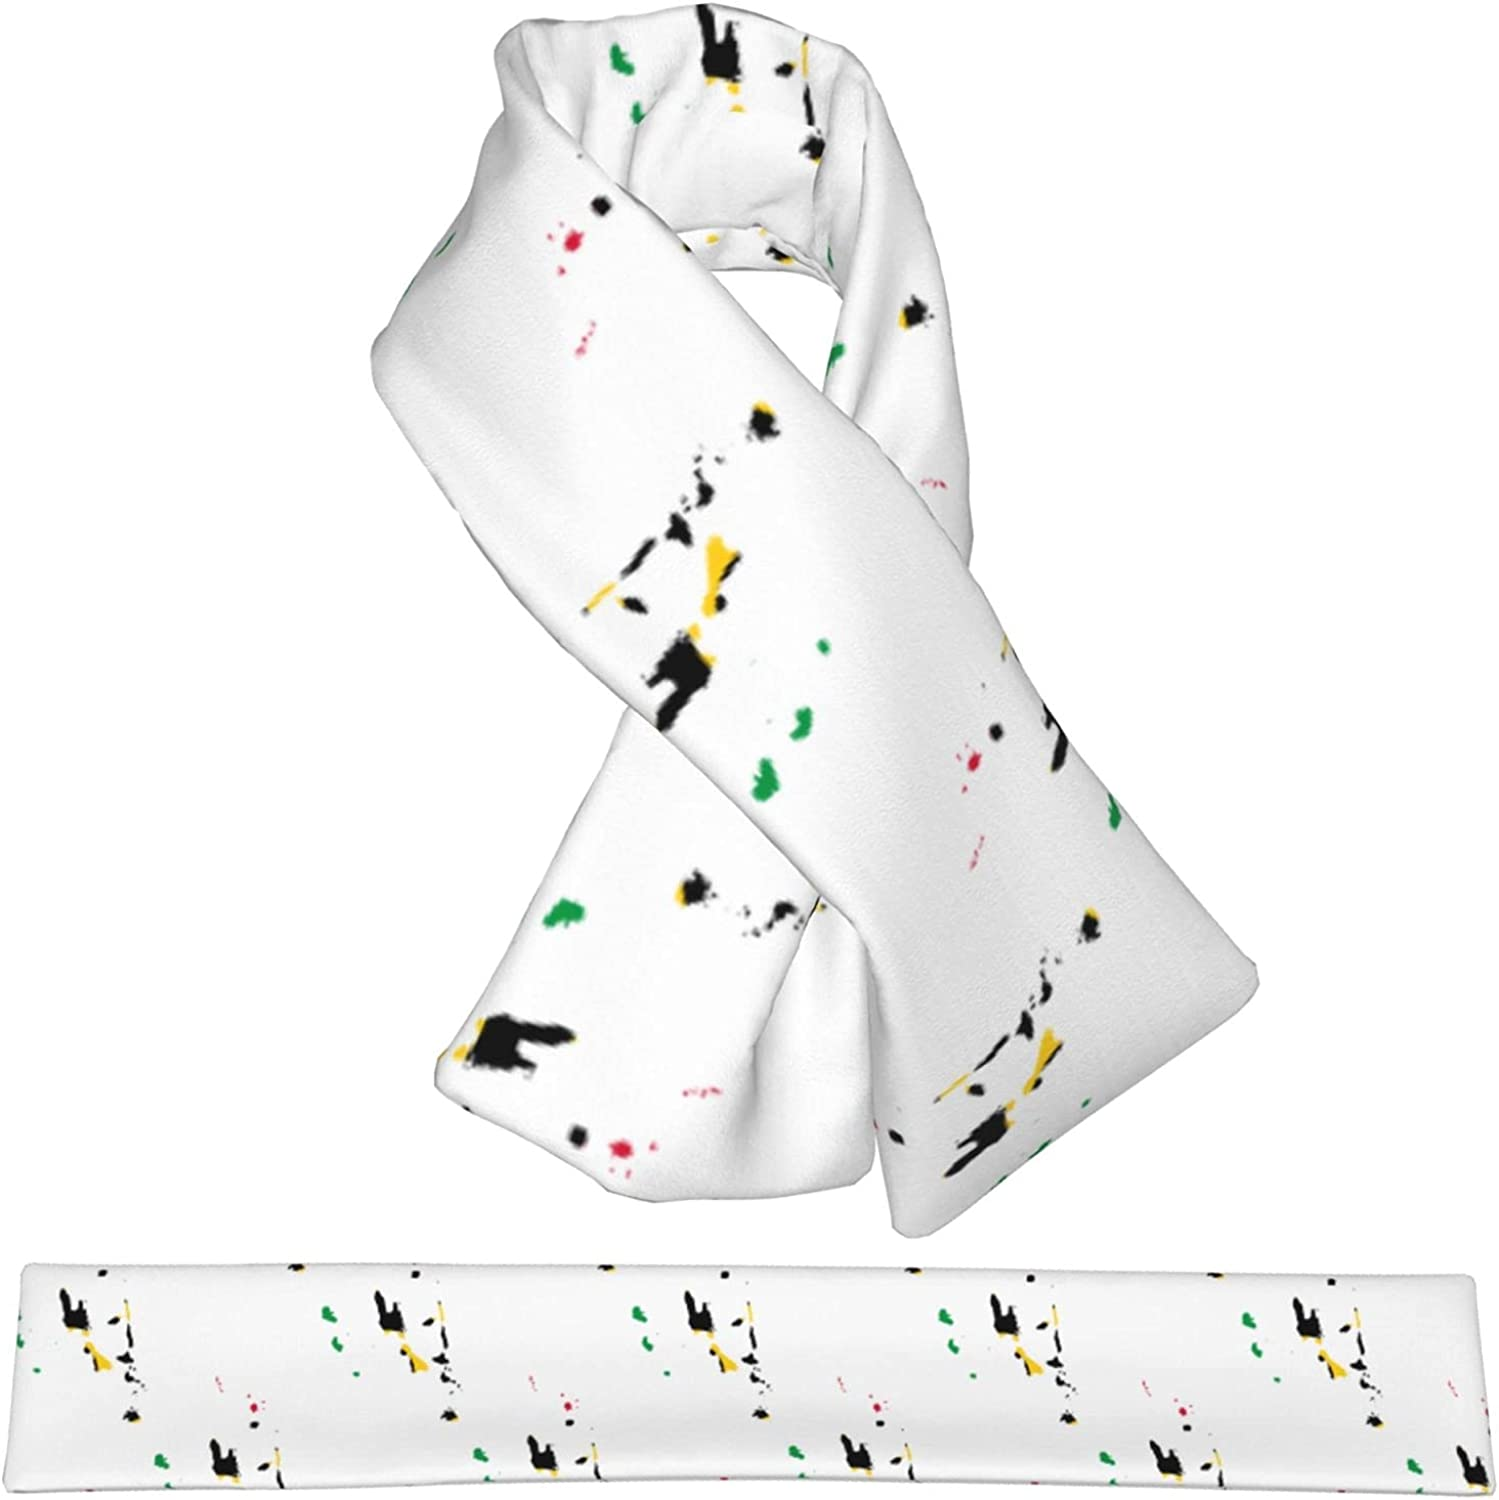 Flag Map Of Sales Vanuatu Flannel Cross Neck W Collar Shawl Scarf Outlet ☆ Free Shipping Wrap